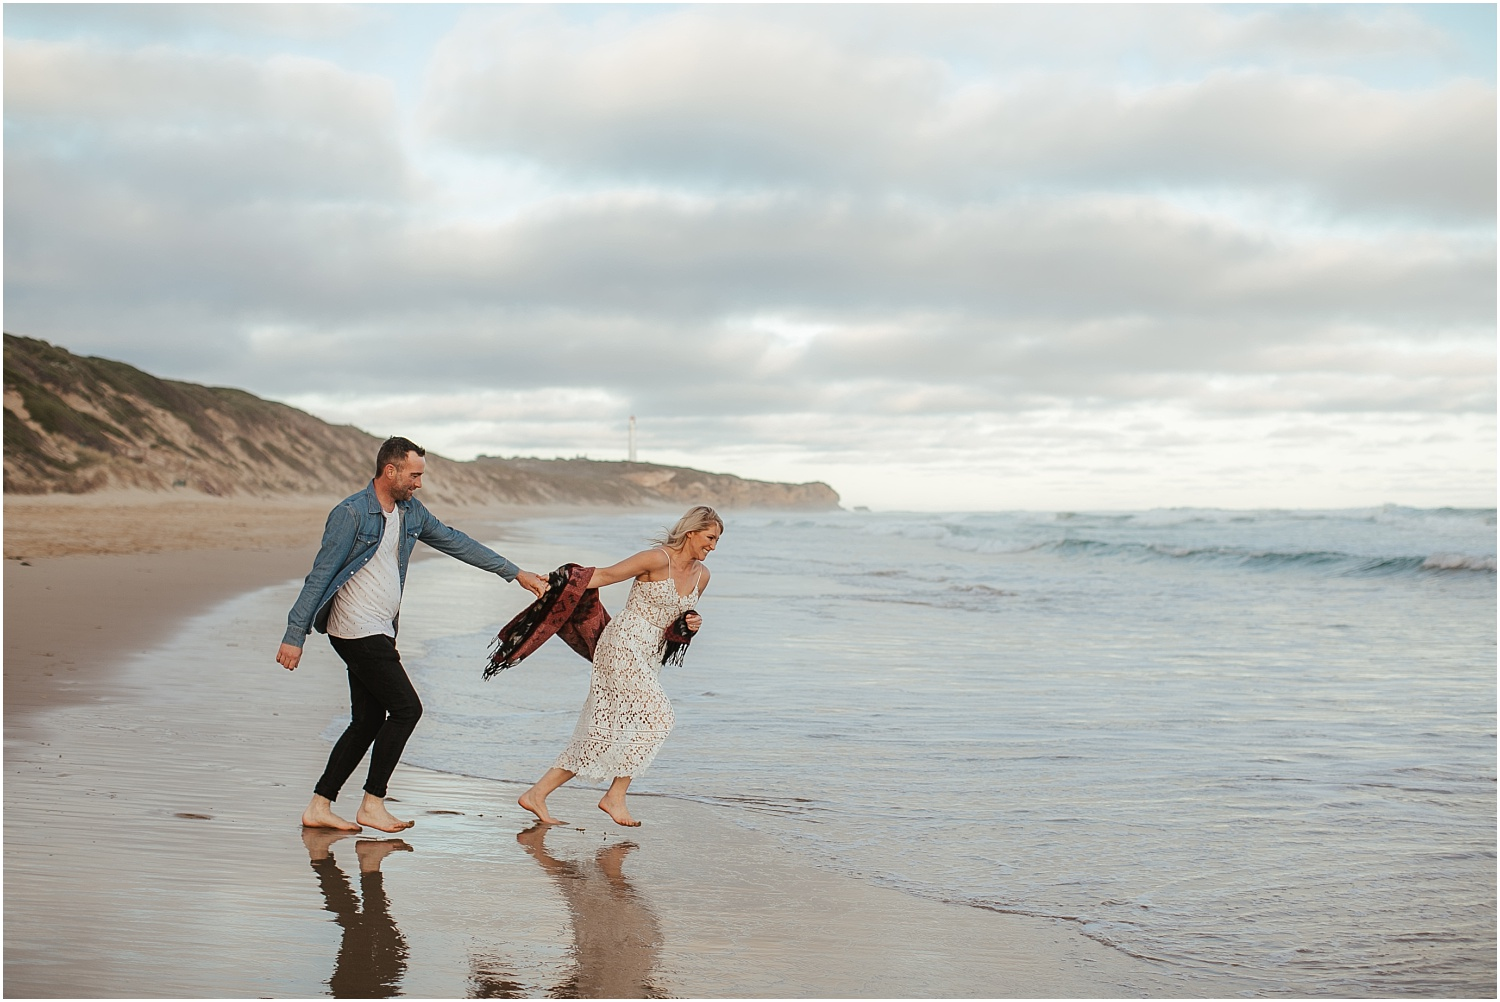 Greer and Sam's engagement shoot in Aireys Inlet on the Great Ocean Road, surf coast and Fairhaven._0027.jpg